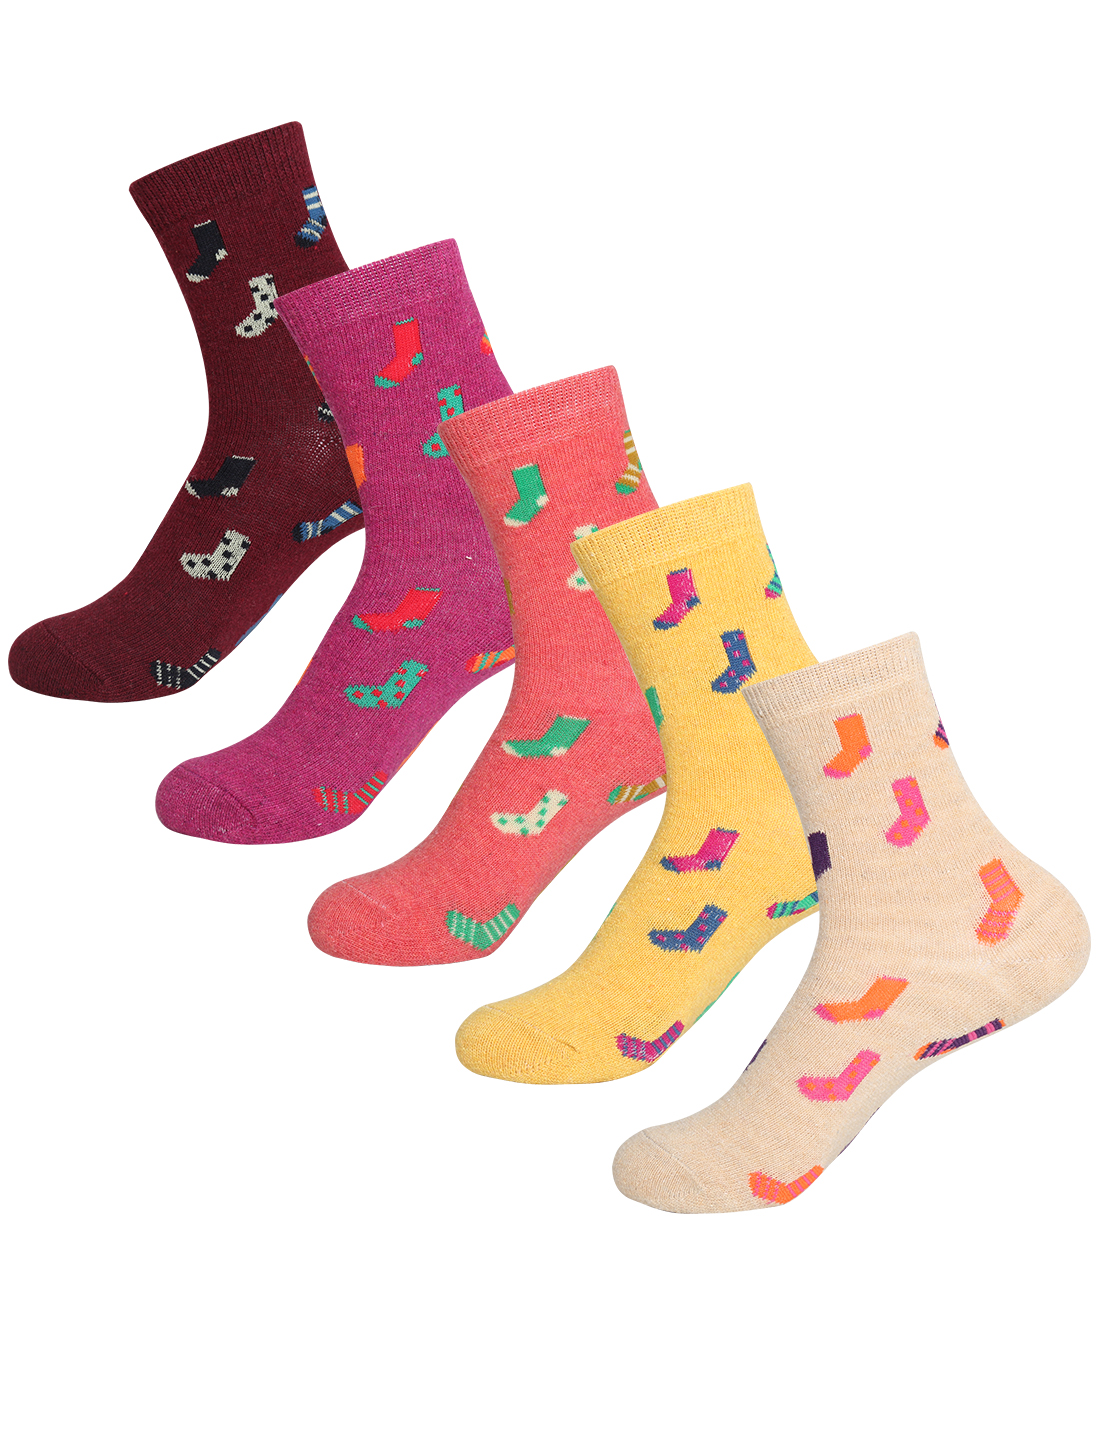 Women 5 Pack Socks Pattern Thermal Crew Socks 7-9 Assorted-Socks